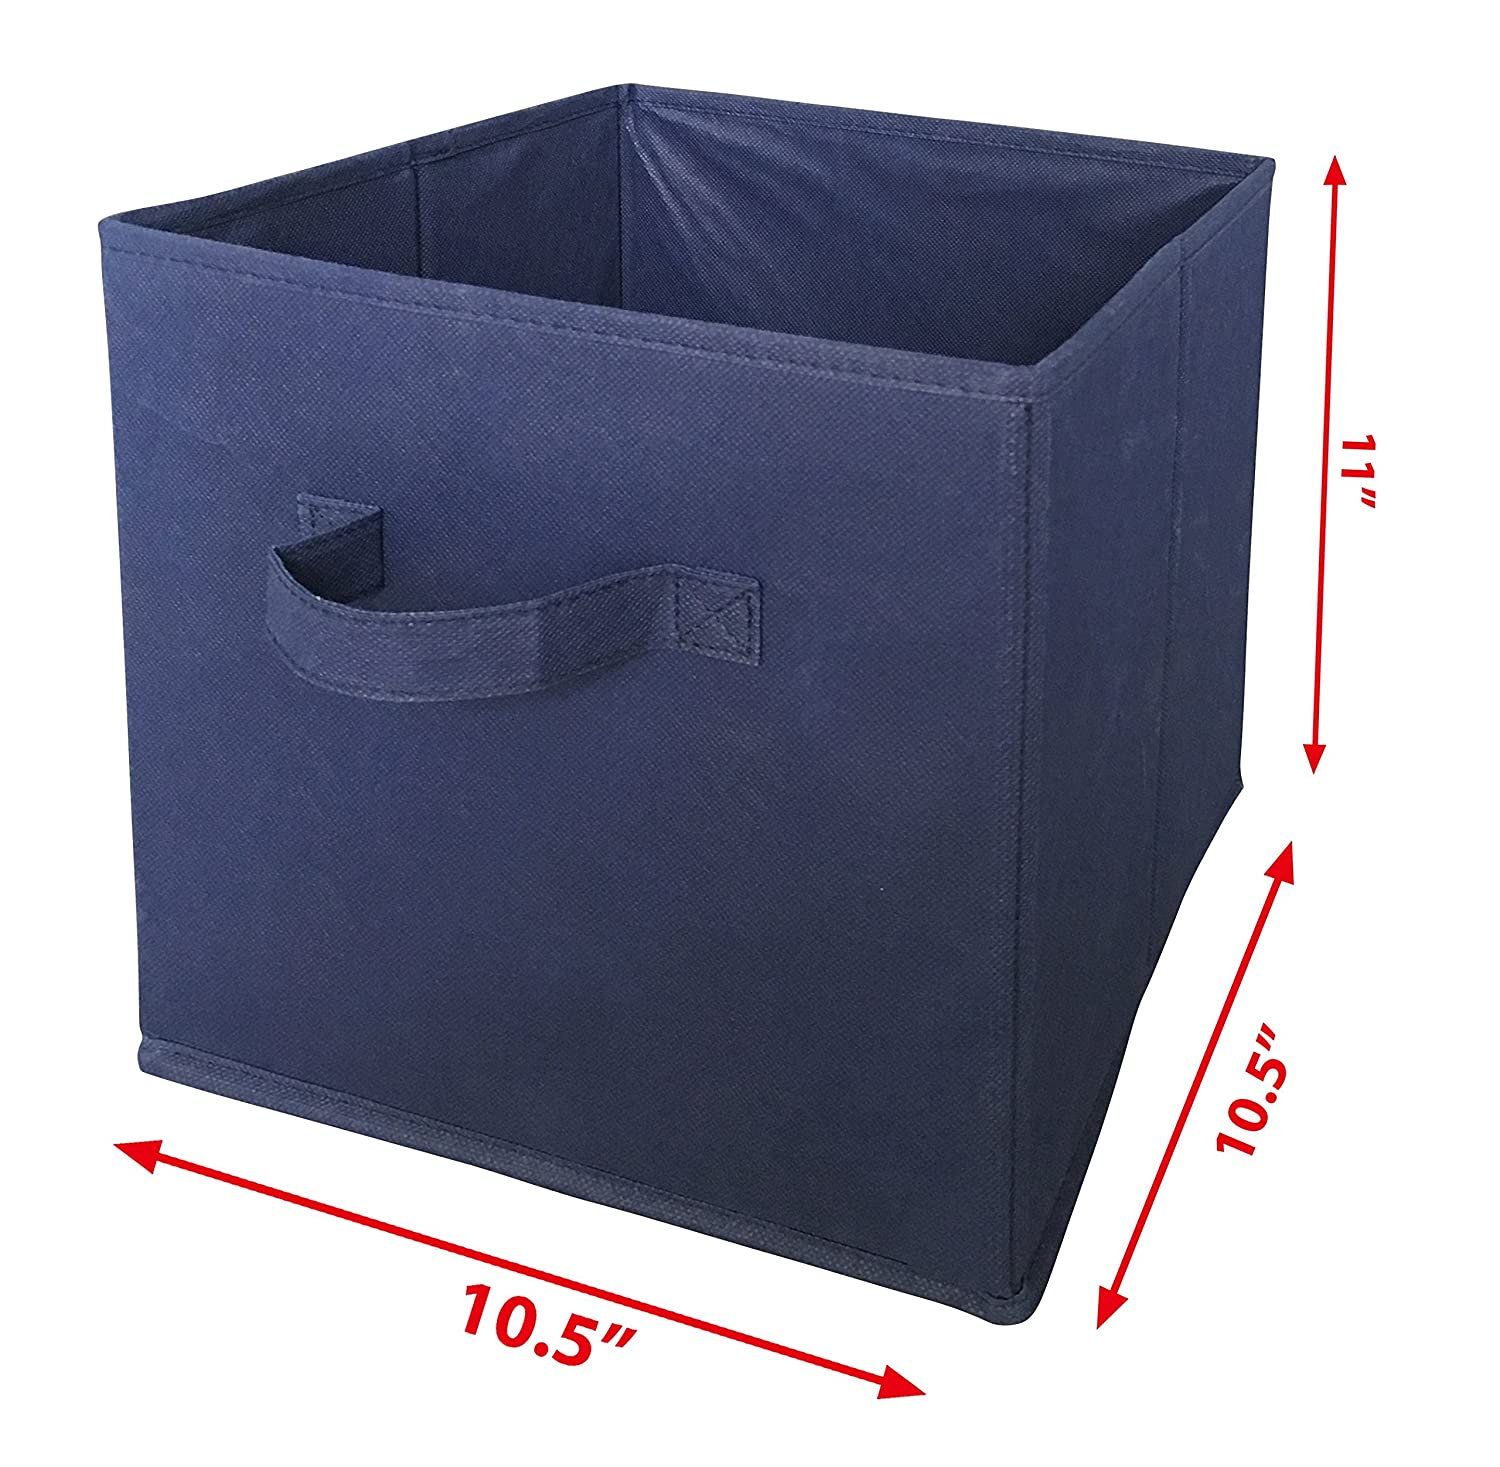 9ad32041685d SodyneeFoldable Cloth Storage Cube Basket Bins Organizer Containers  Drawers, 6 Pack, Navy Blue